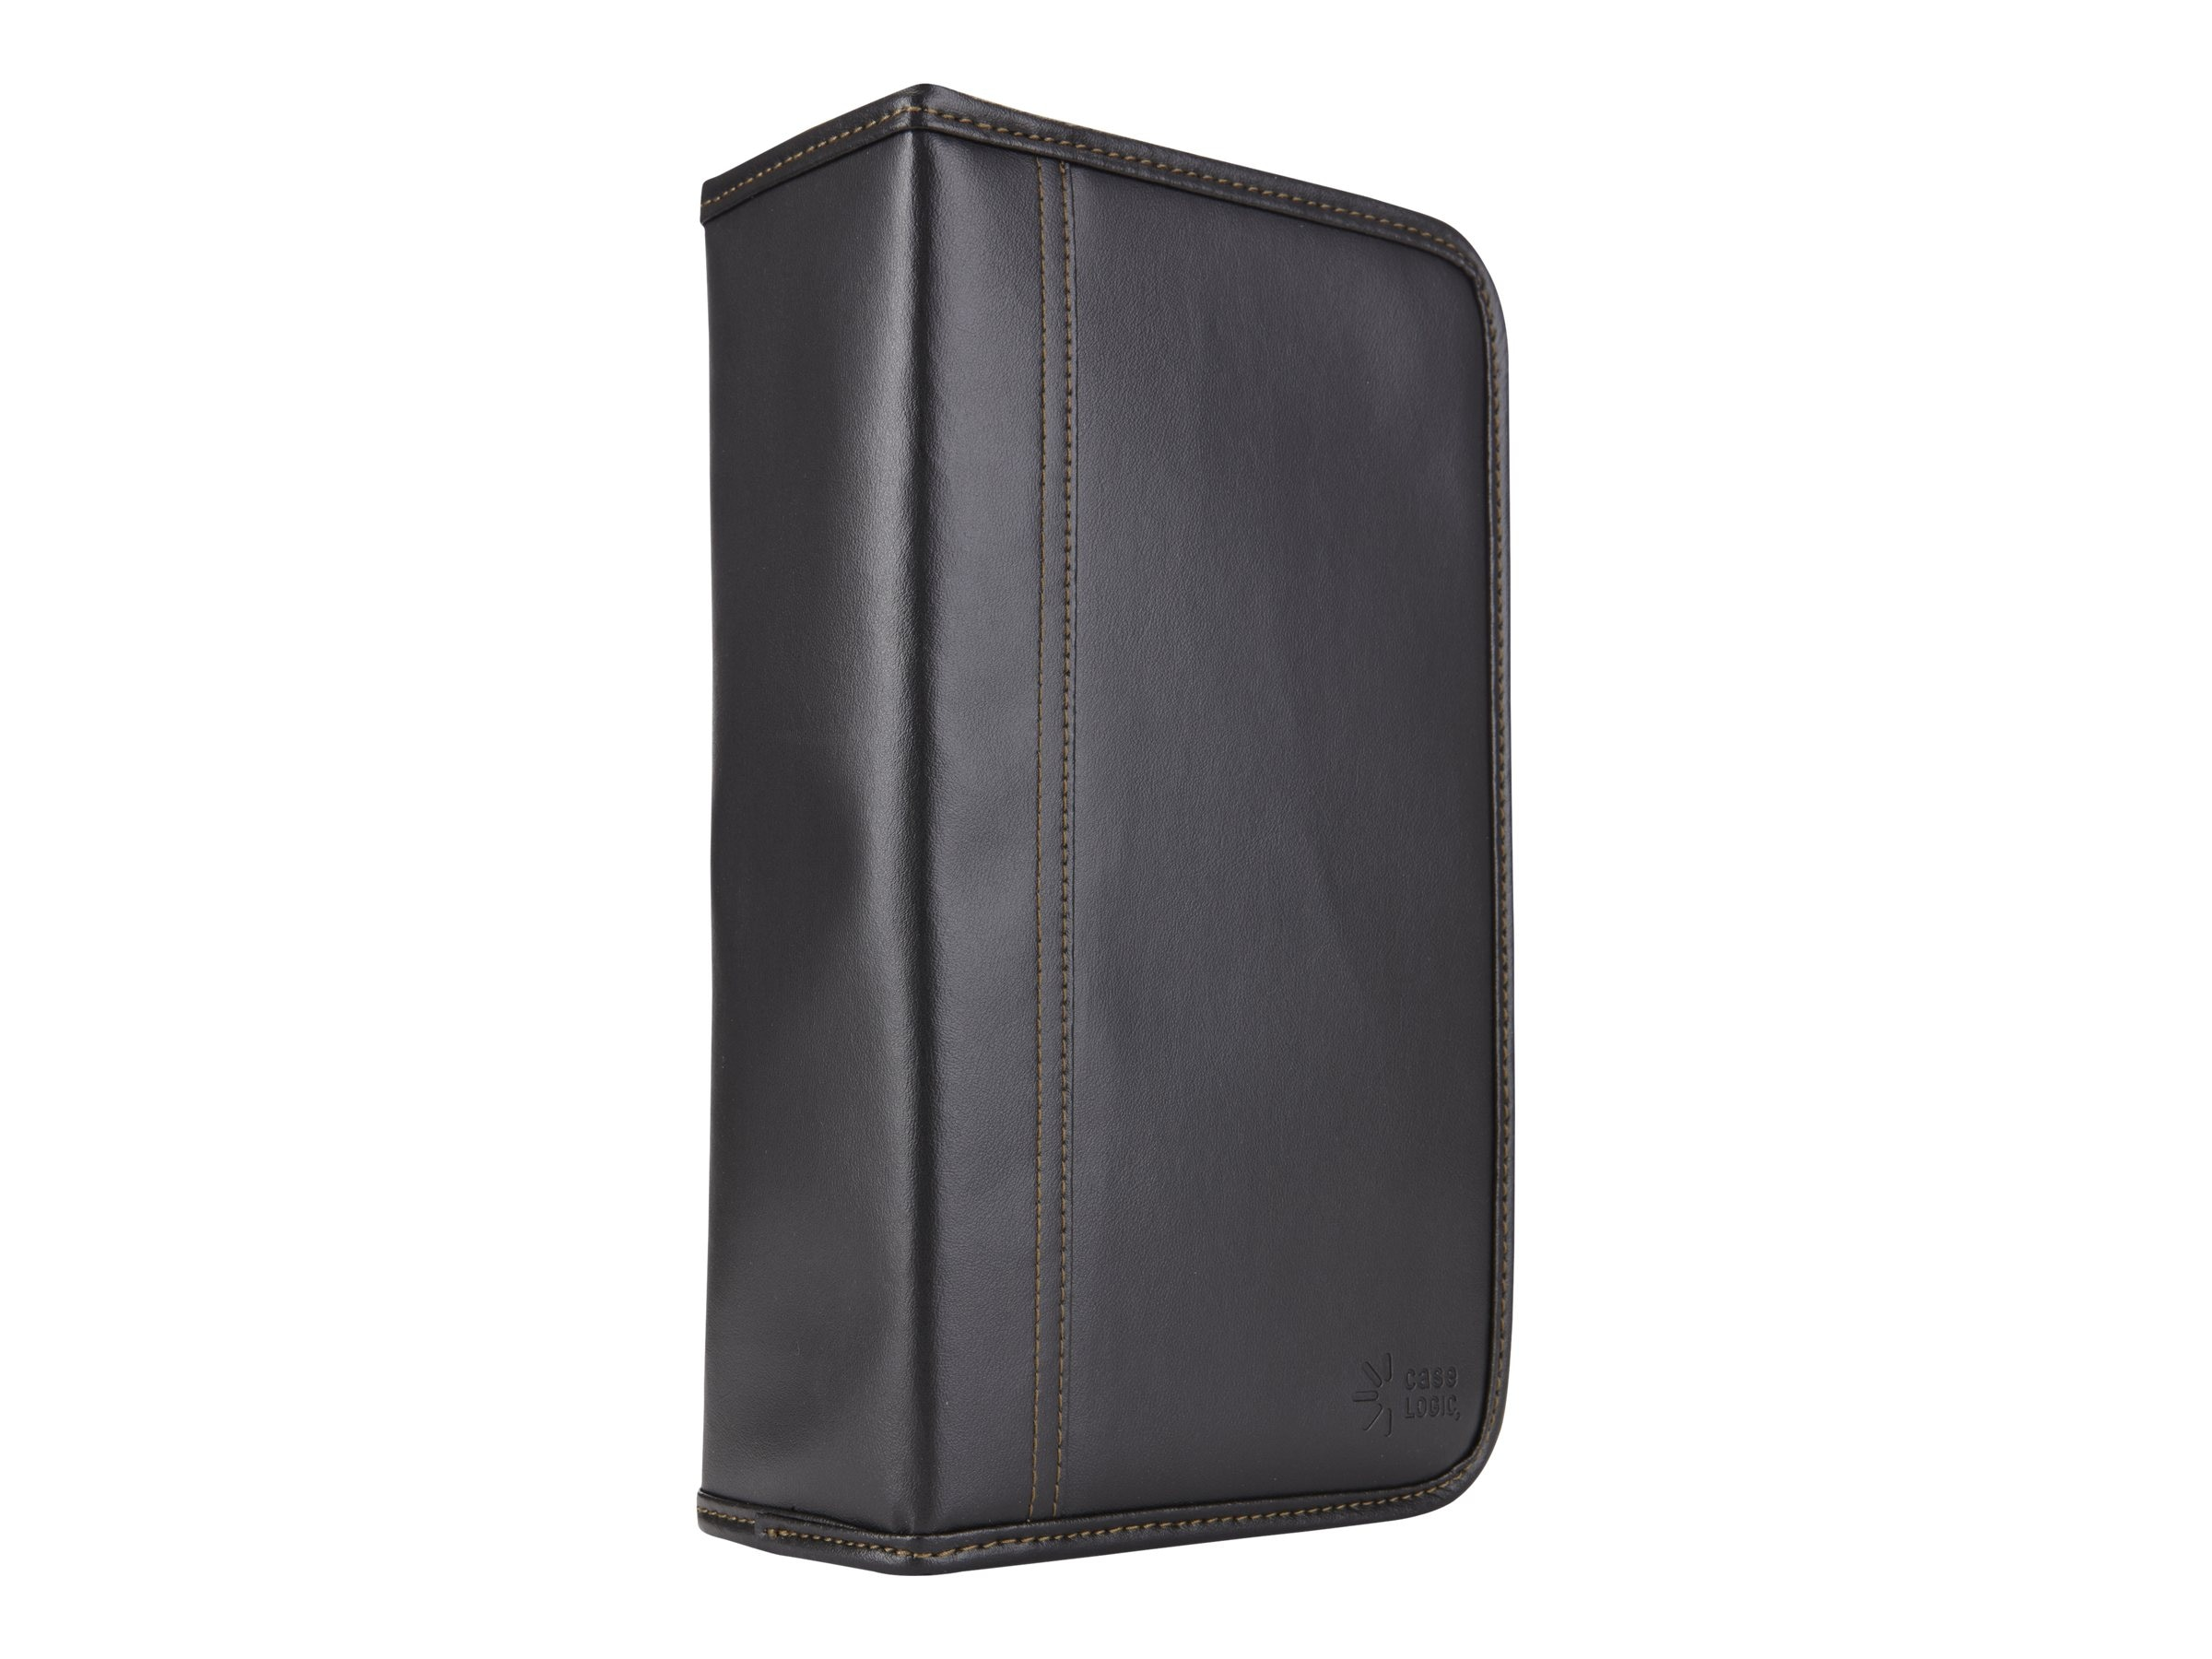 Case Logic CD Wallet; 92 Disc Capacity - Black Koskin, KSW92, 246326, Media Storage Cases